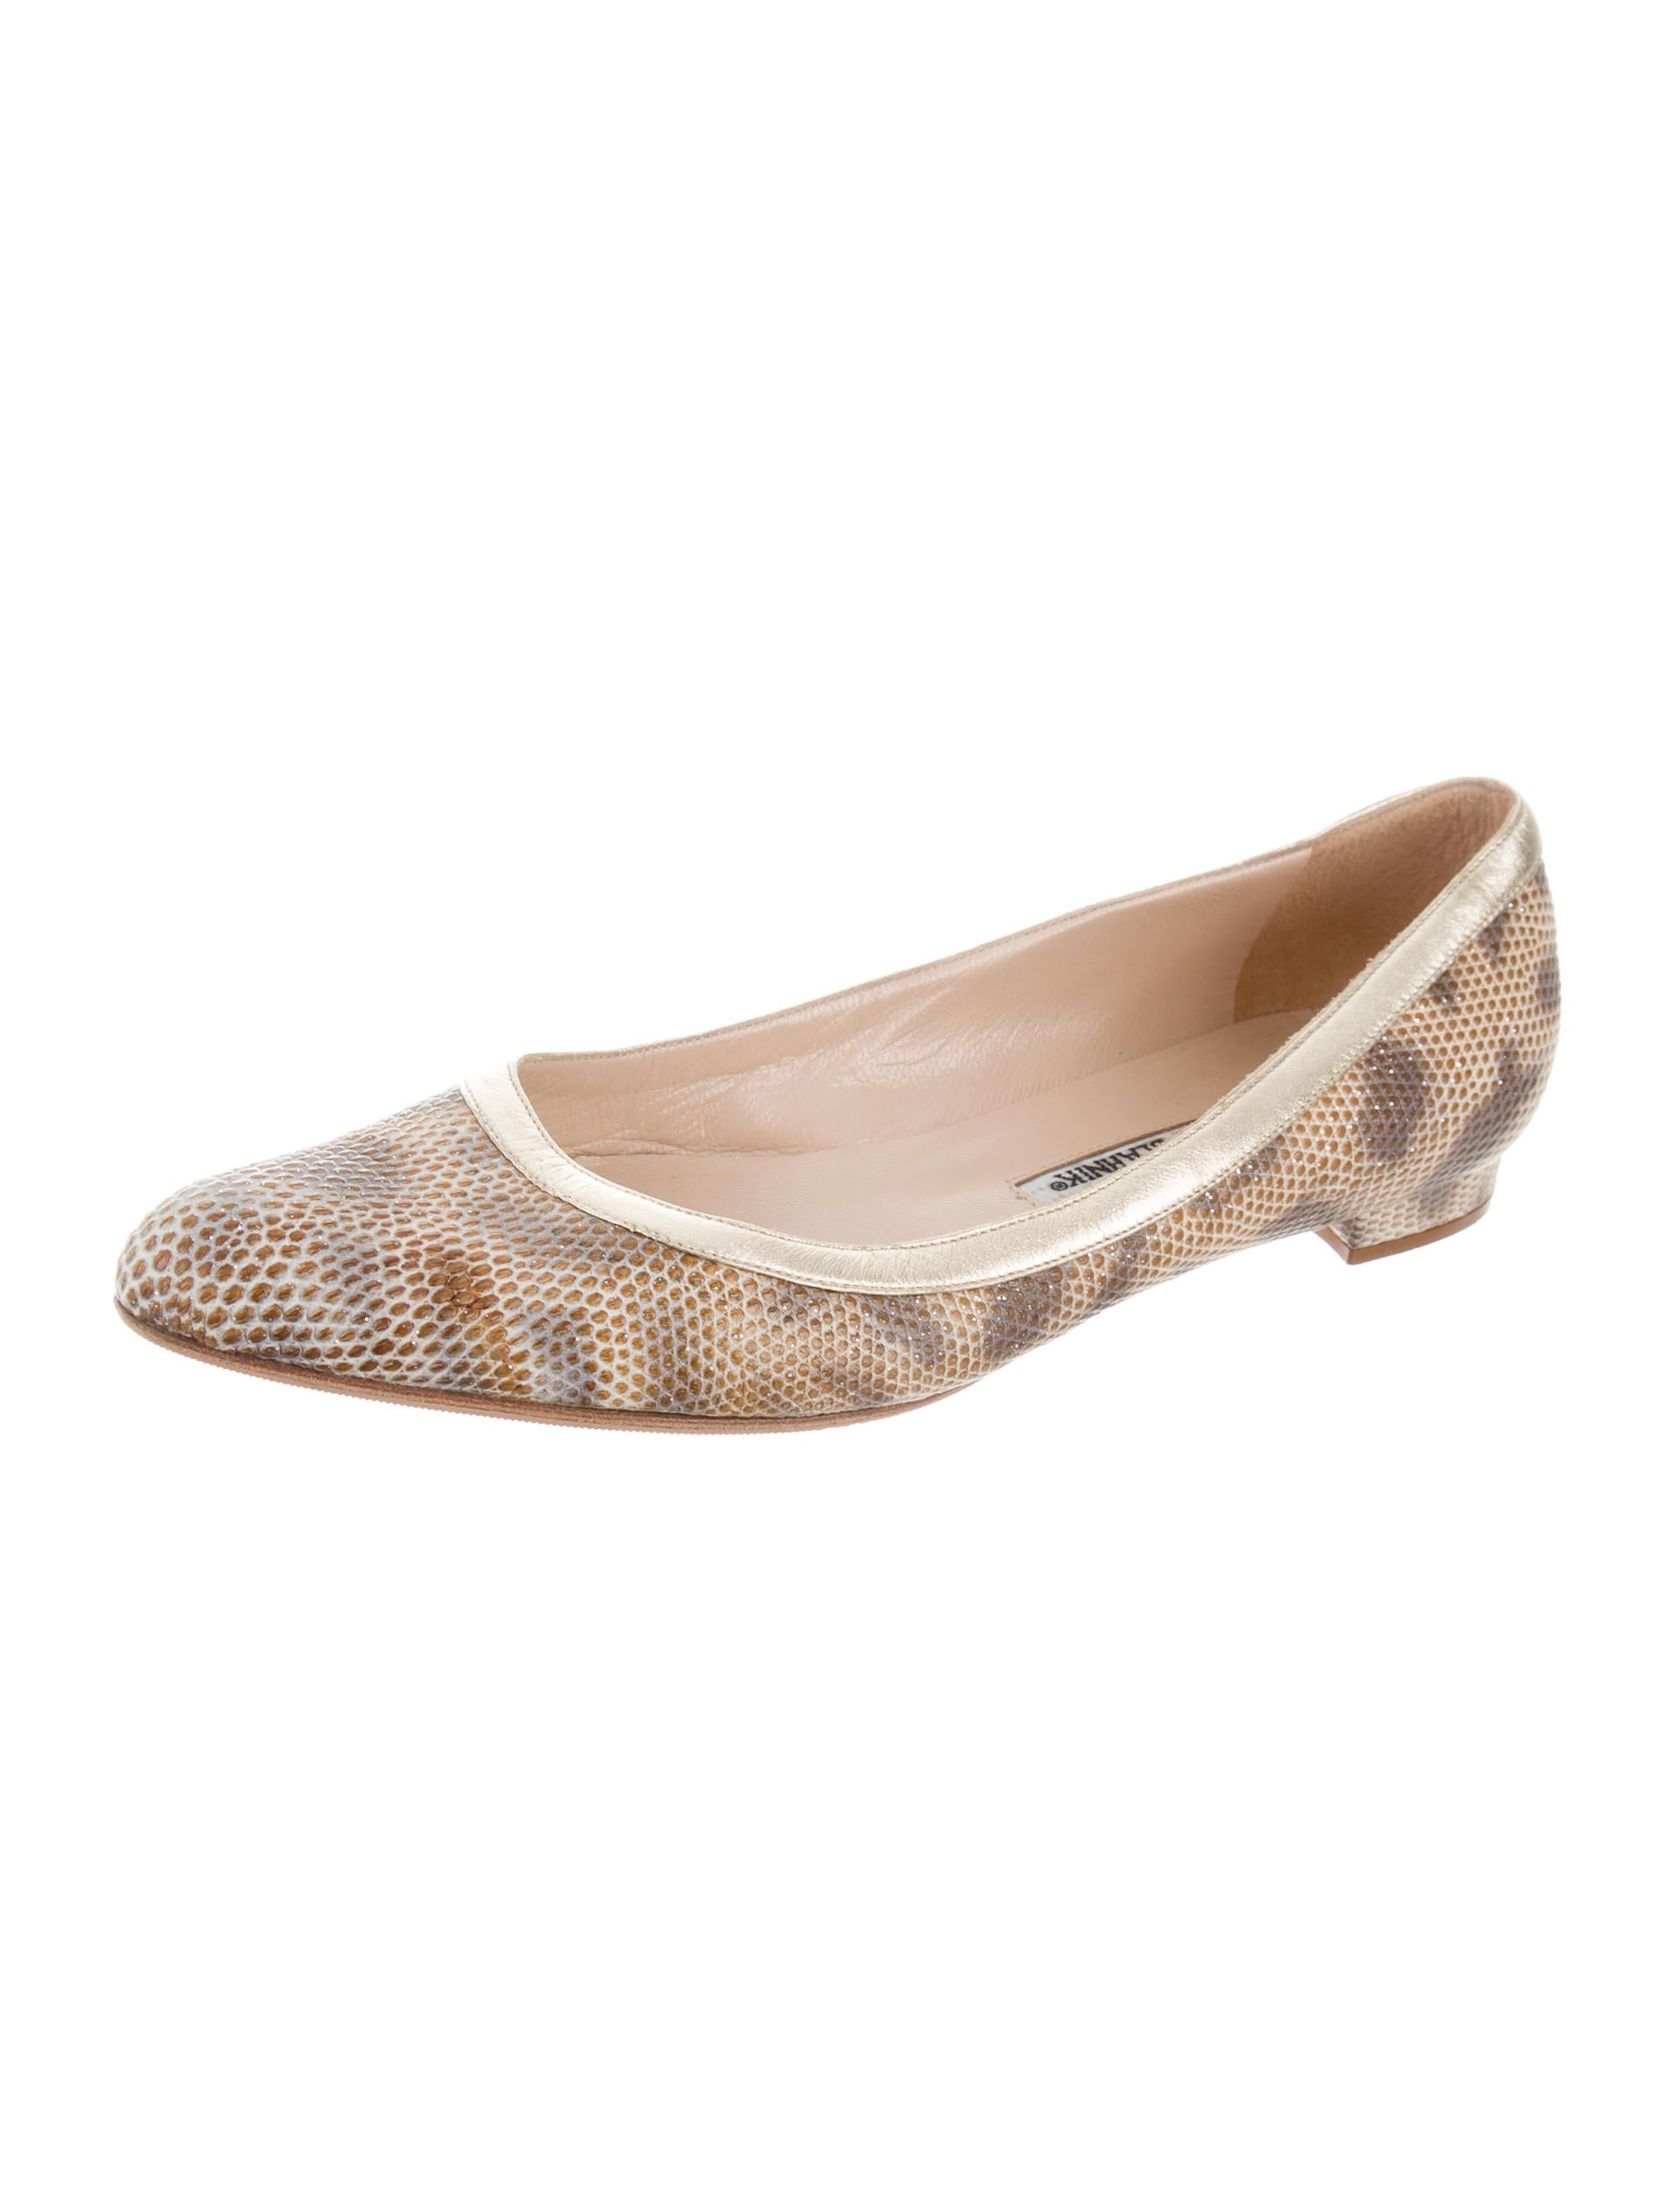 new styles cheap online Manolo Blahnik Lizard Pointed-Toe Flats cheap prices reliable 2014 newest cheap online 2014 unisex for sale cheap sale buy GOLol